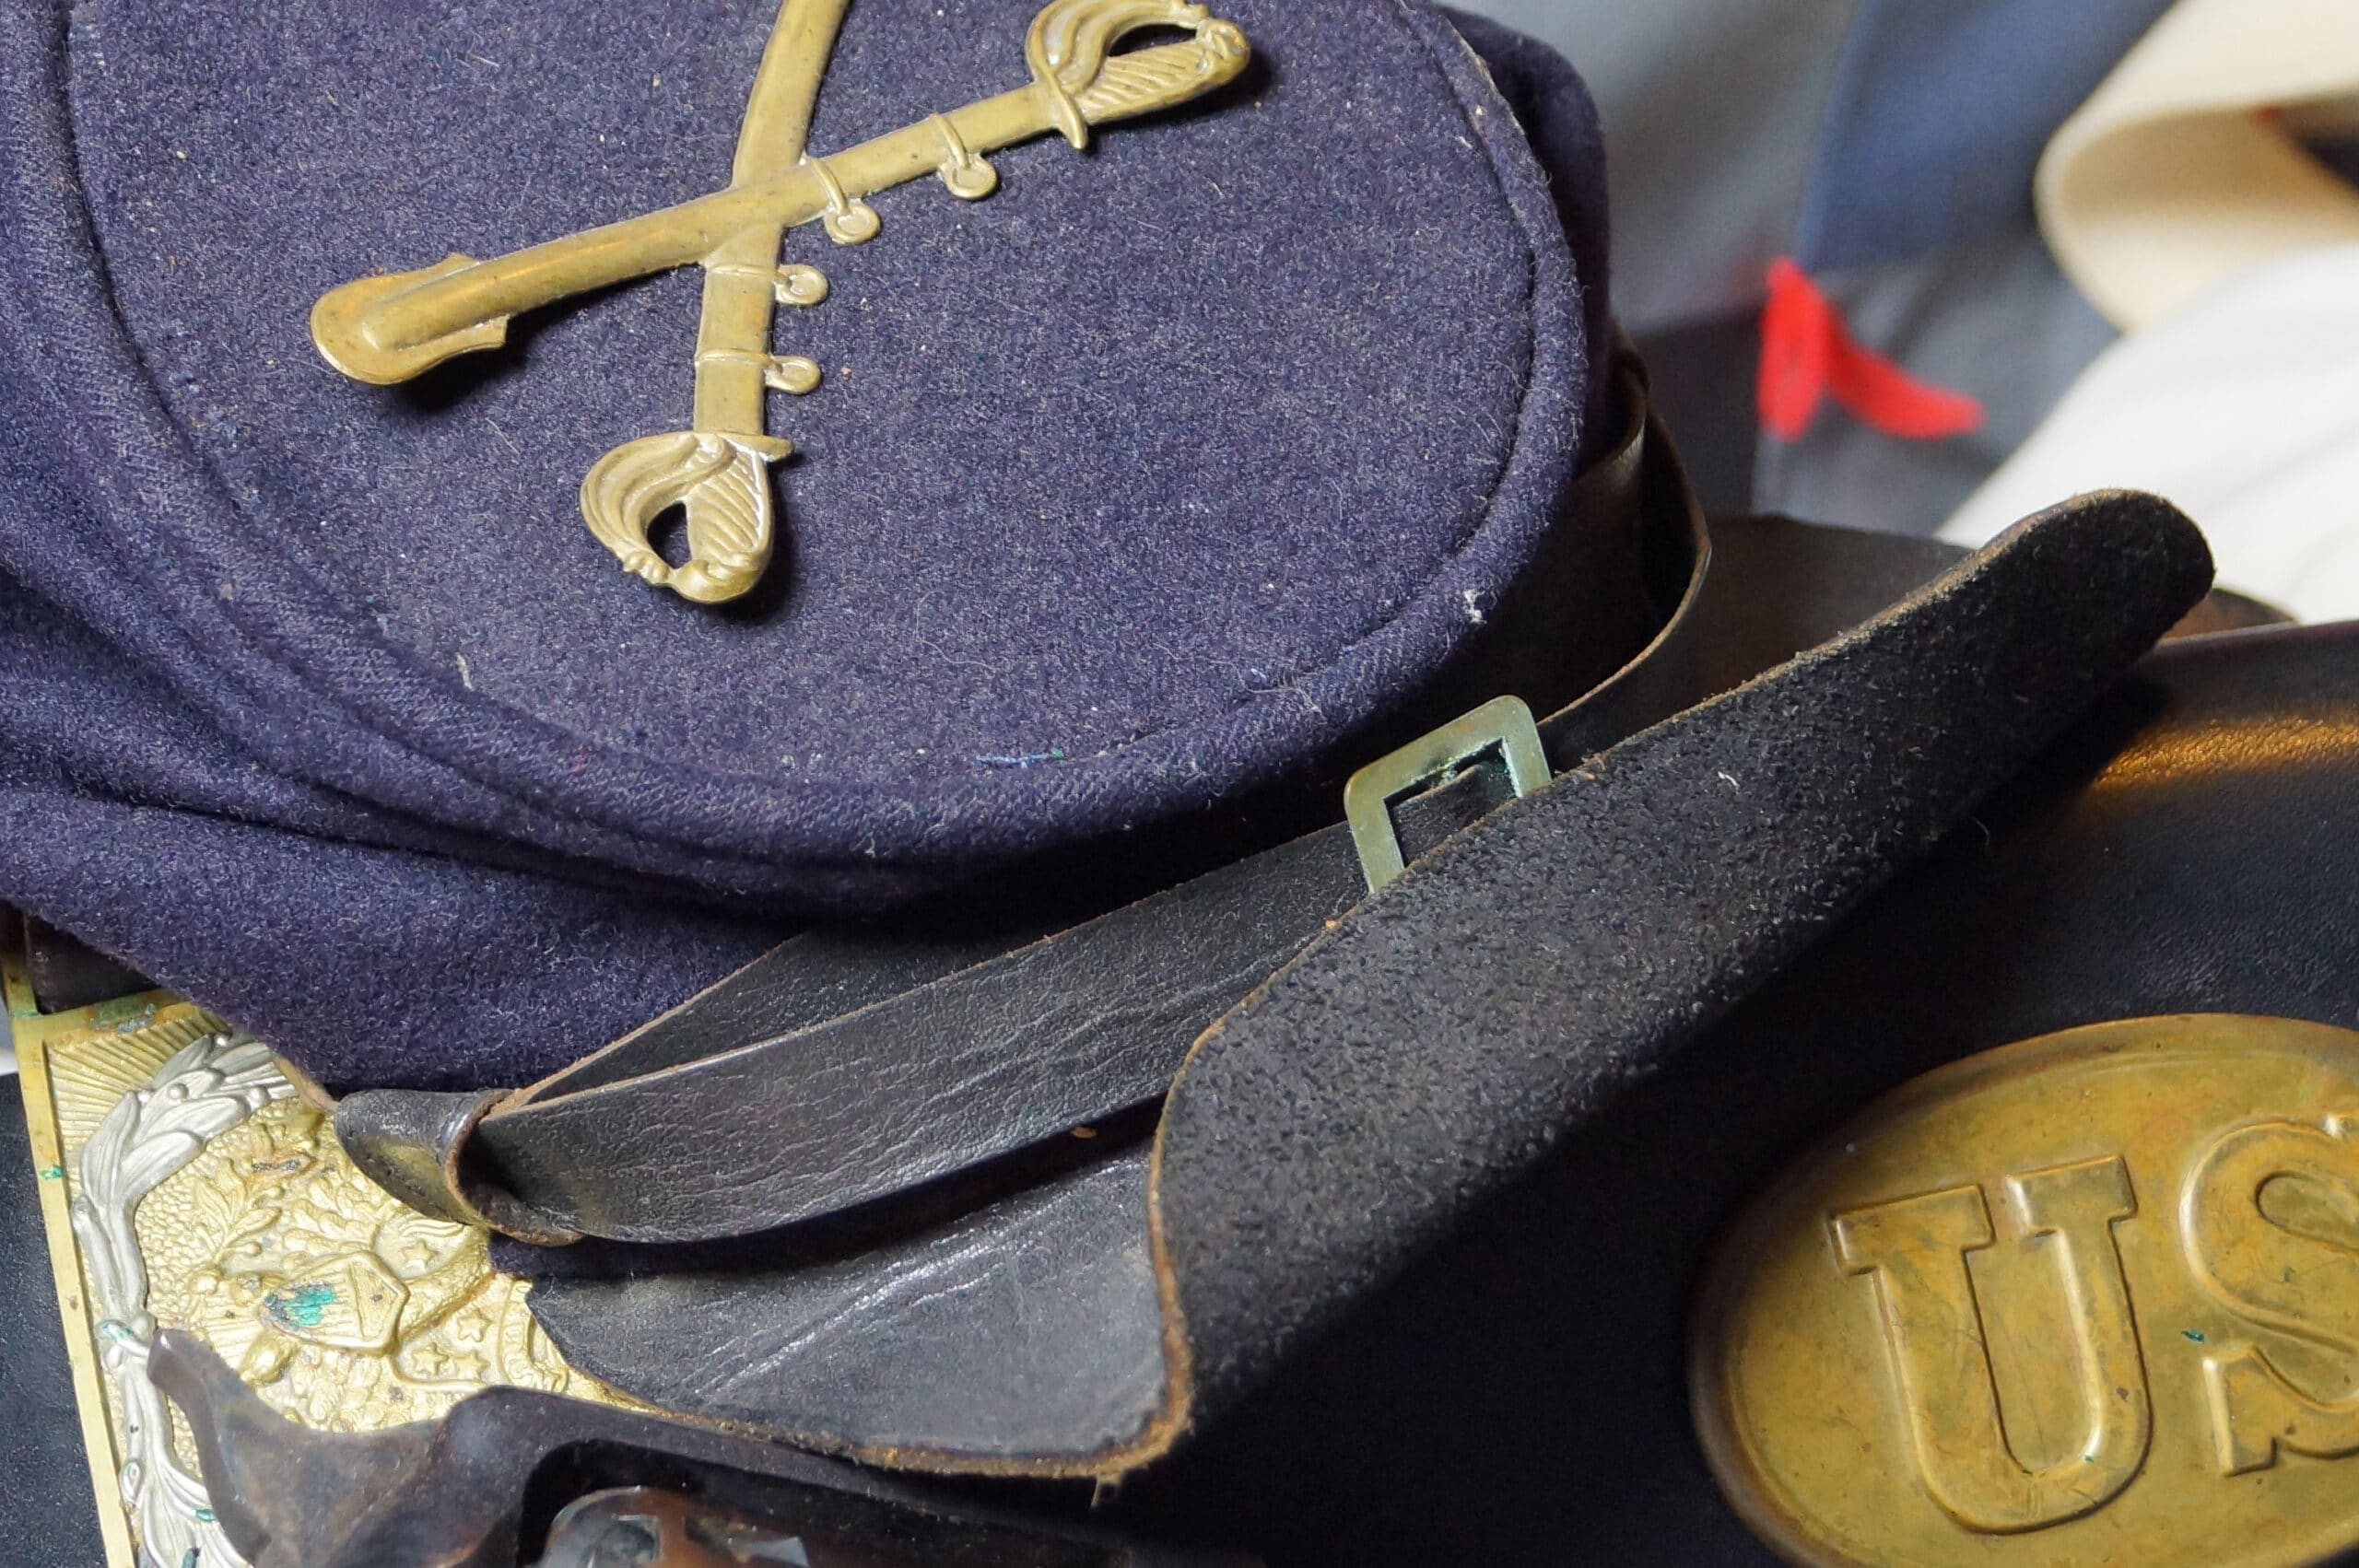 Union Army uniform cap of the American Civil War.